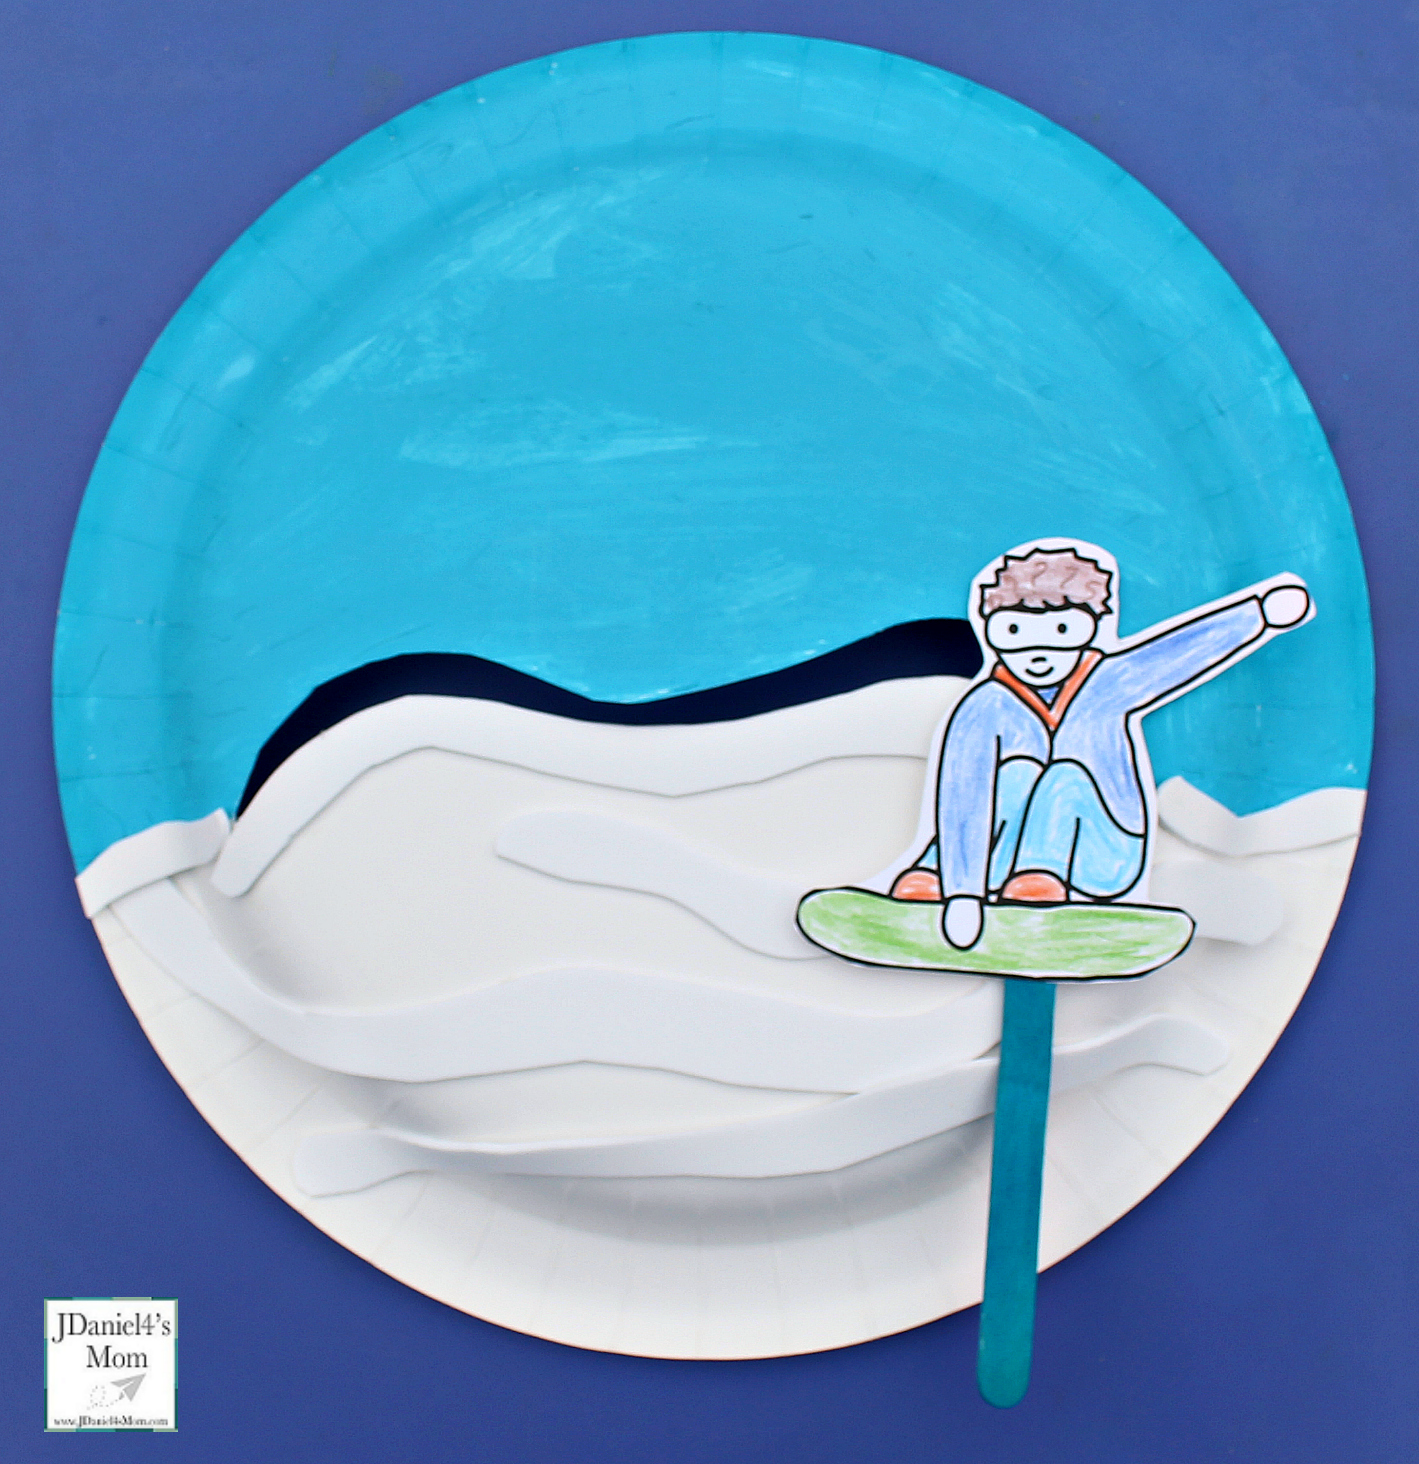 Snowboarding Downhill Interactive Paper Plate Crafts - Finished Plate and Snowboarder